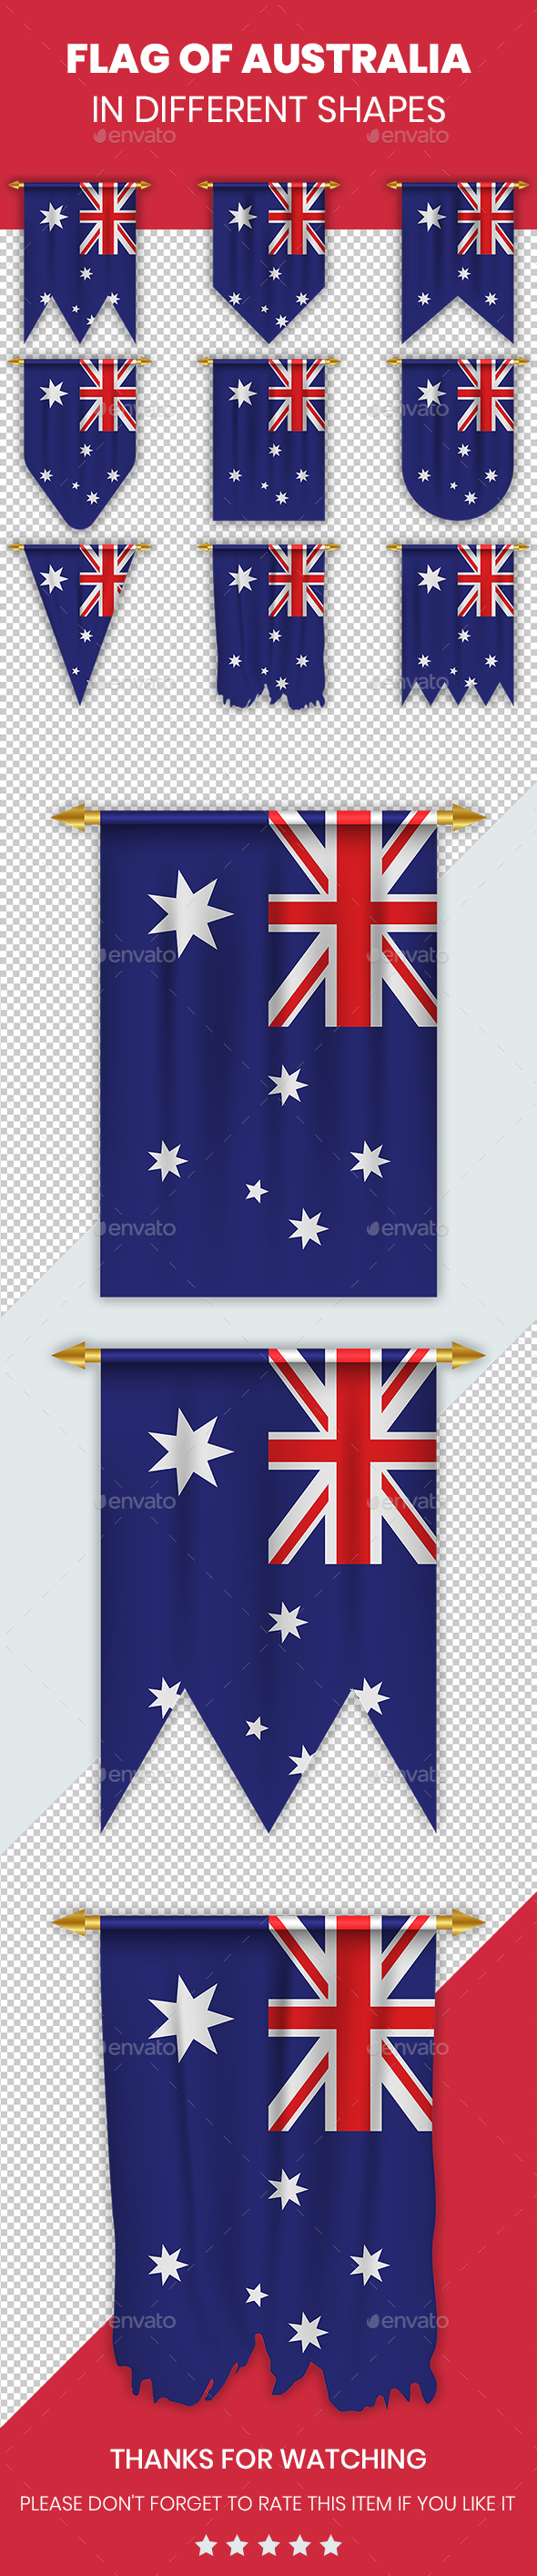 Australia Flag in Different Shapes